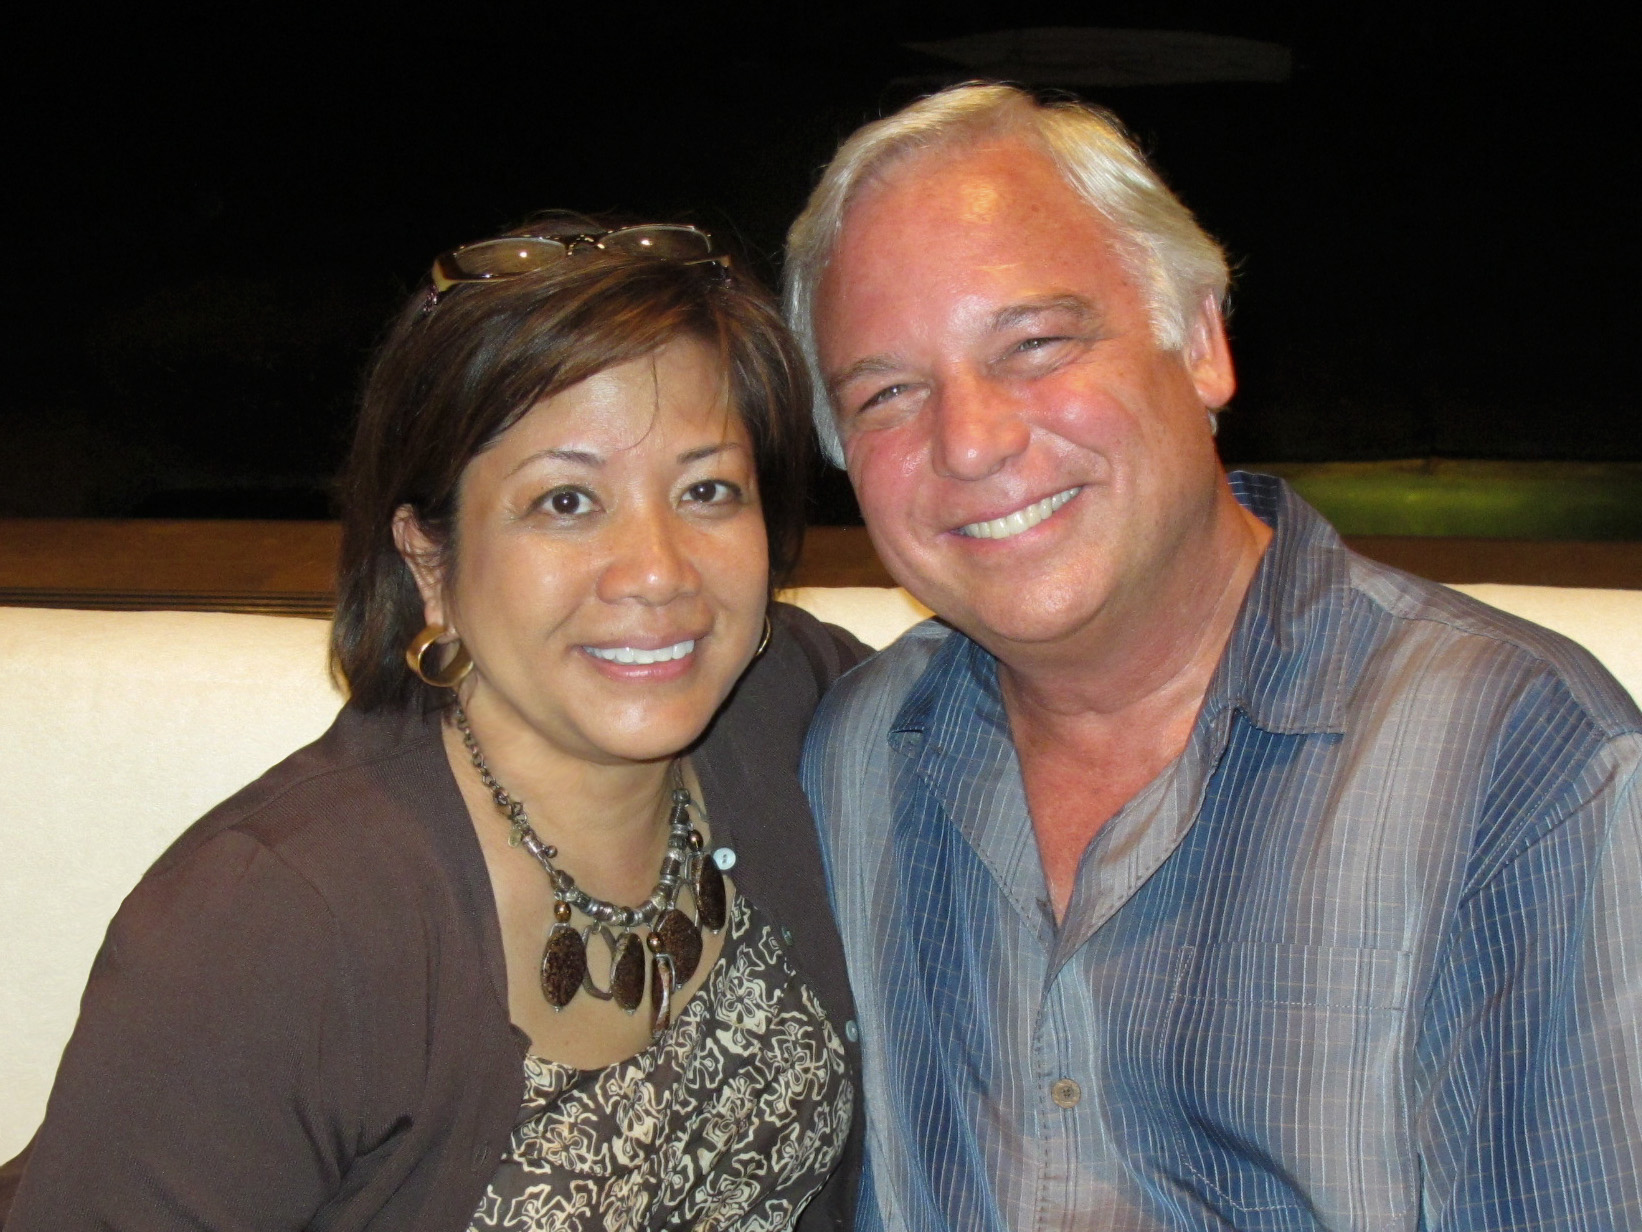 Discussing my book with Jack Canfield, Maui, 2010.